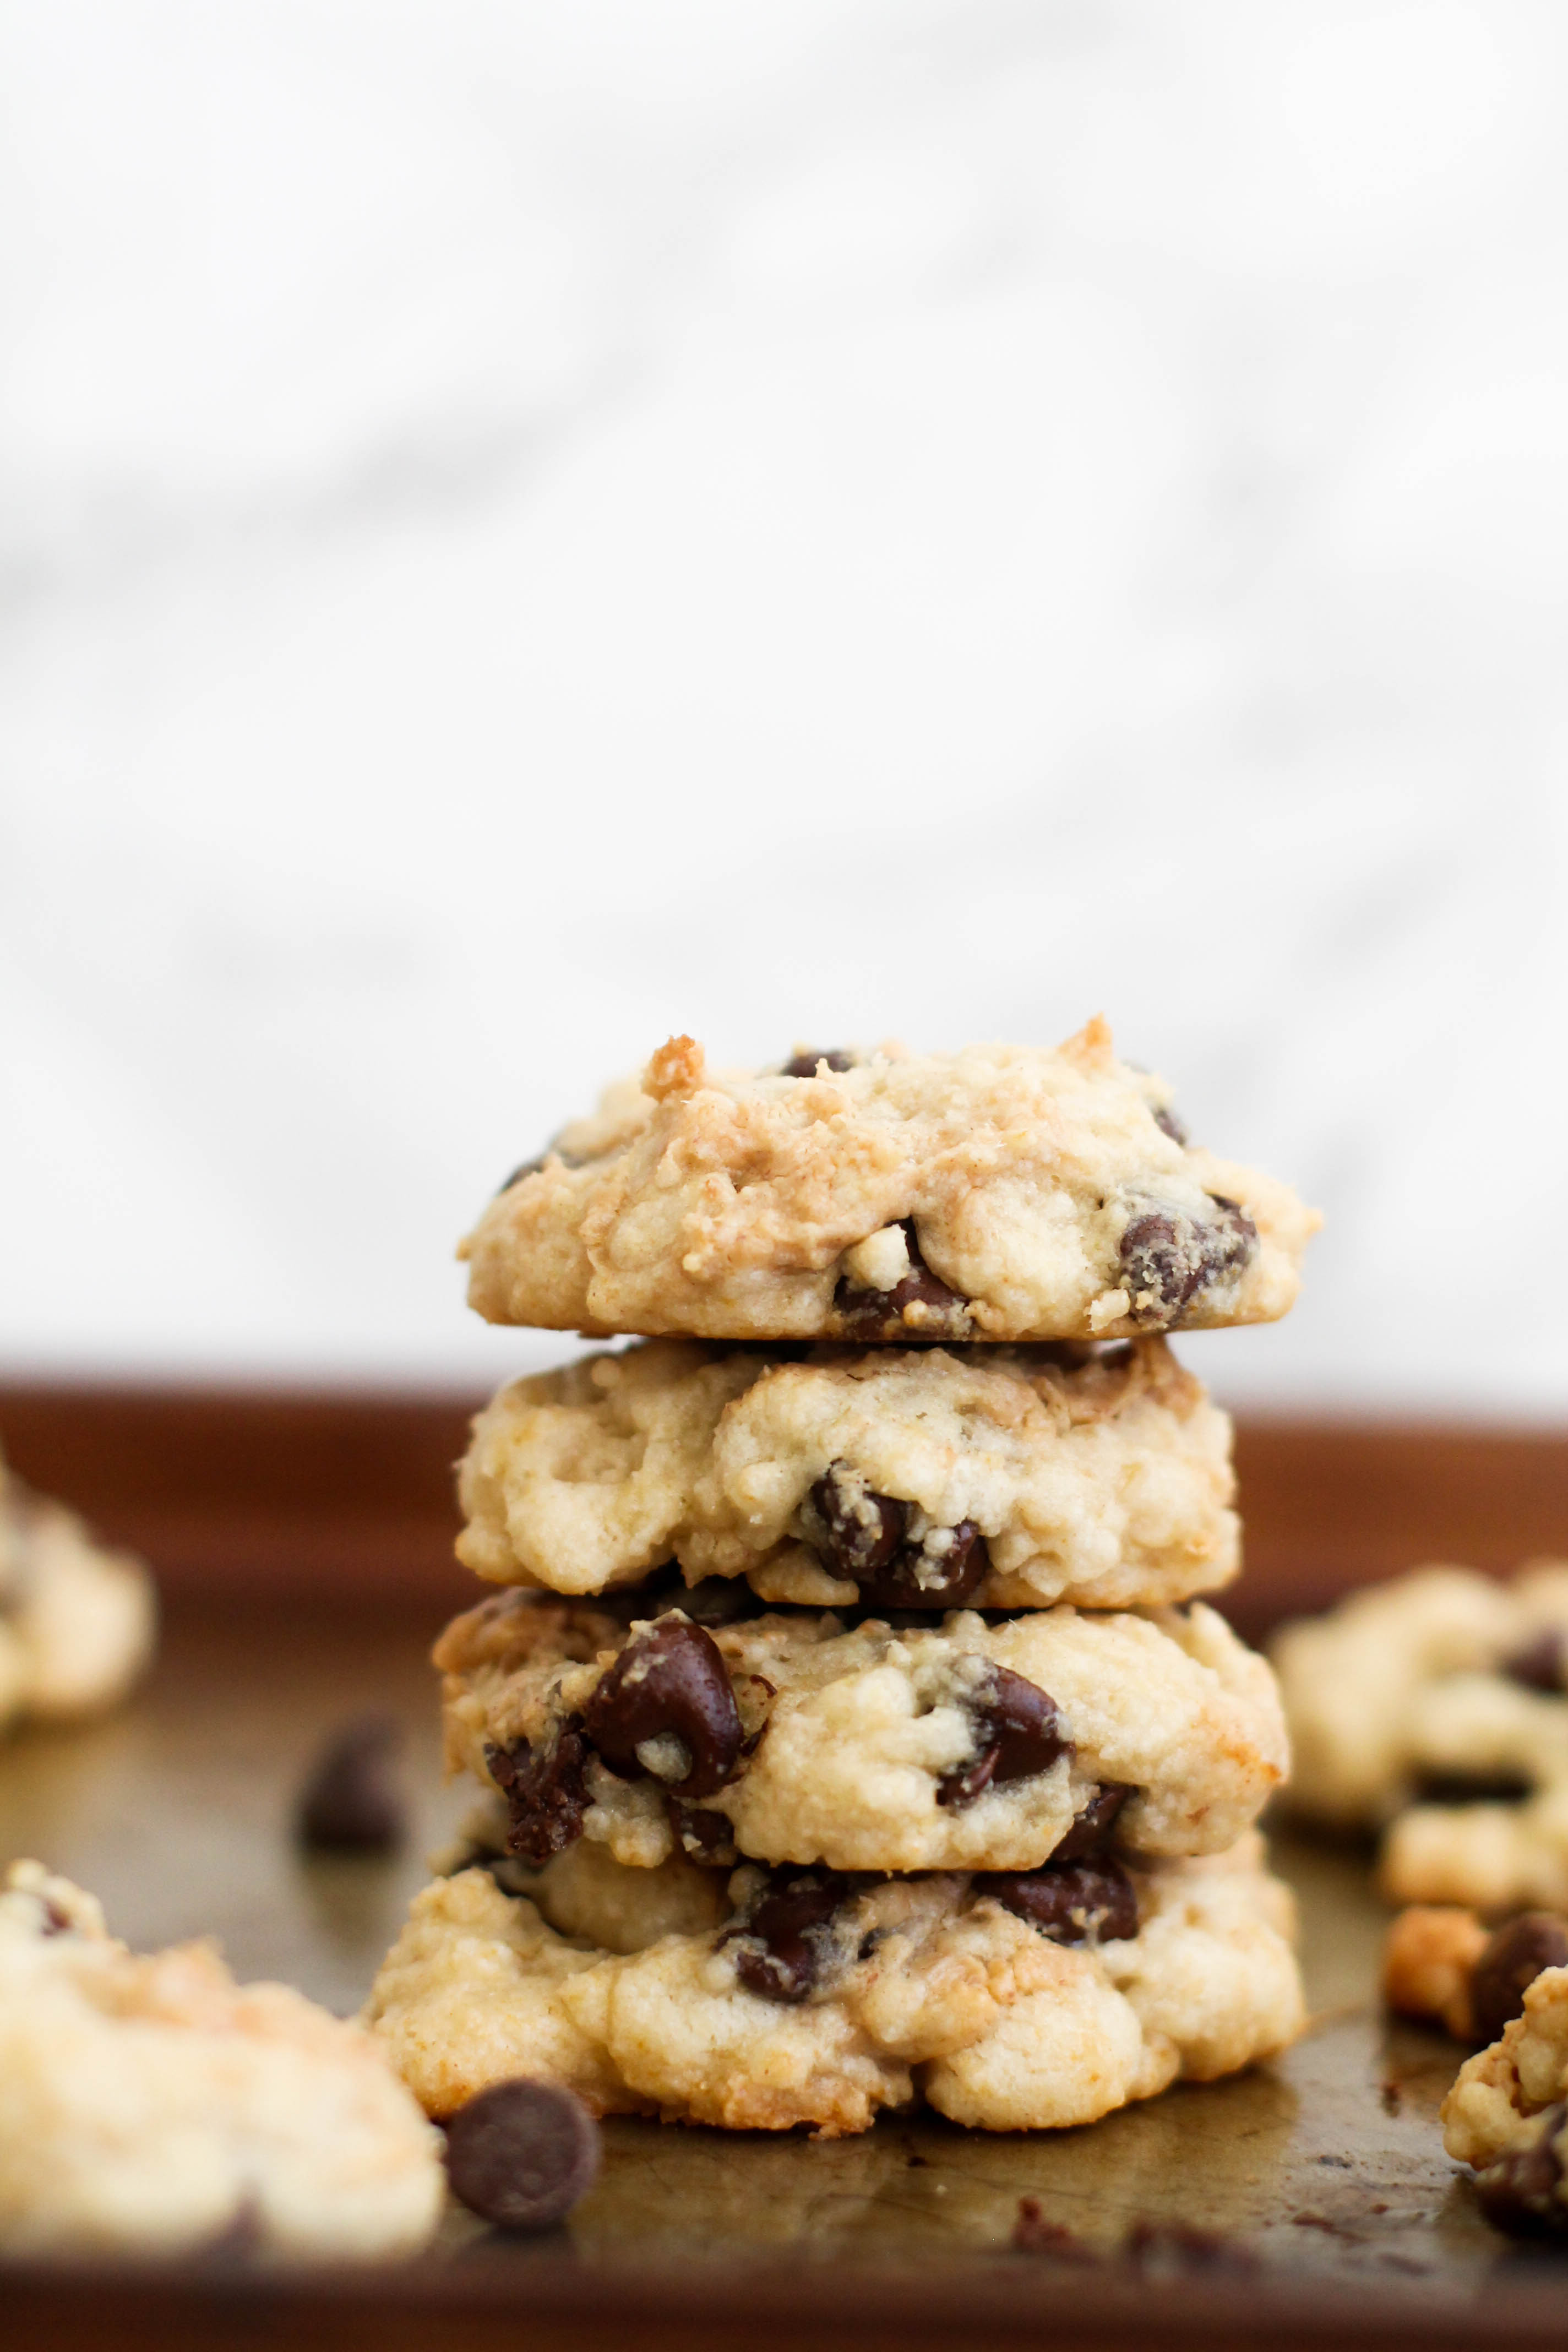 These vegan peanut butter stuffed chocolate chip cookies are full of flavor and make for the perfect dessert! They're nine ingredients and take less than 40 minutes to make.